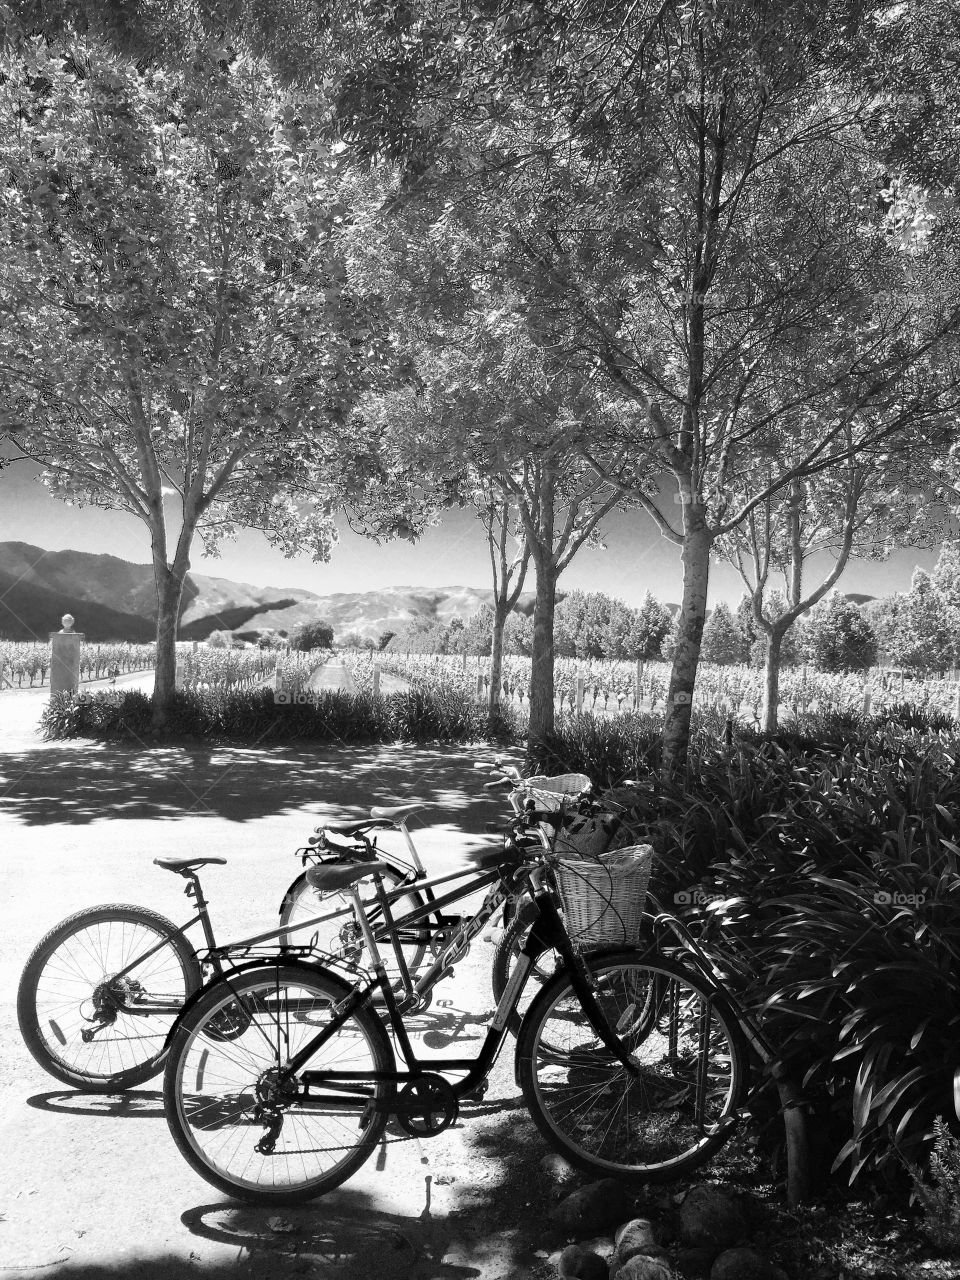 Bicycles in the shade